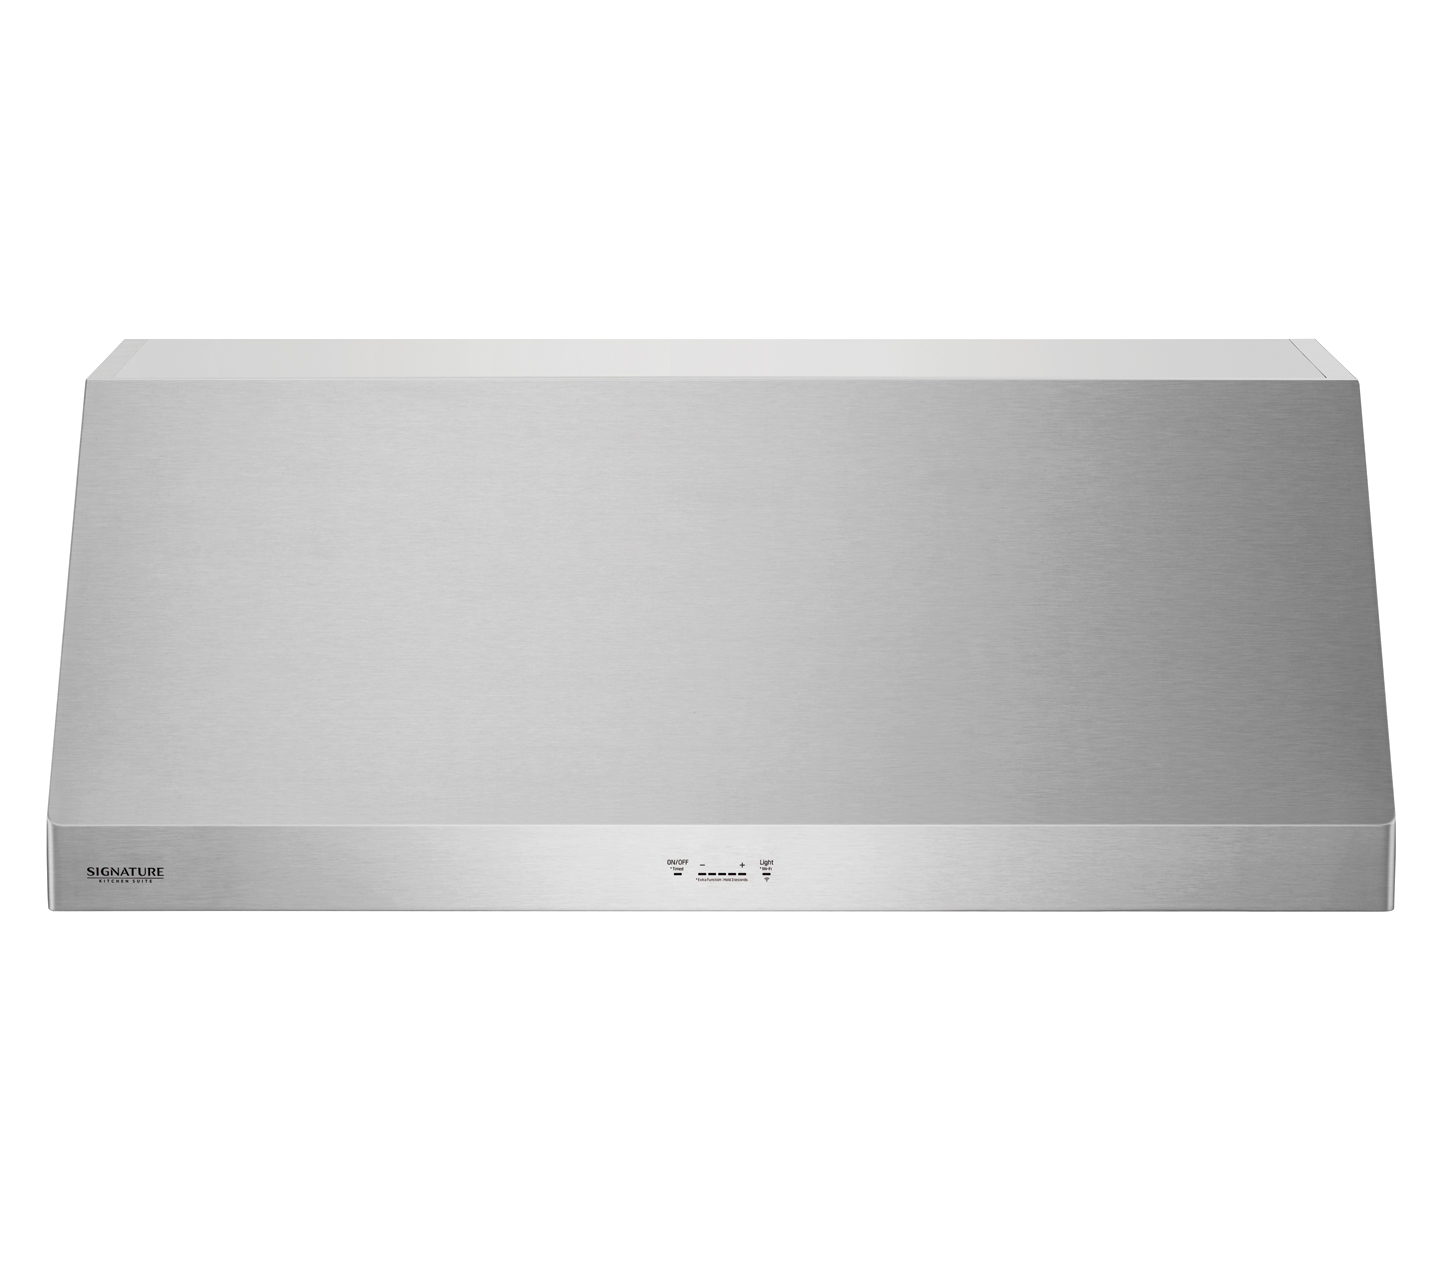 Signature Kitchen Suite 48-inch Pro-Style Wall Hood